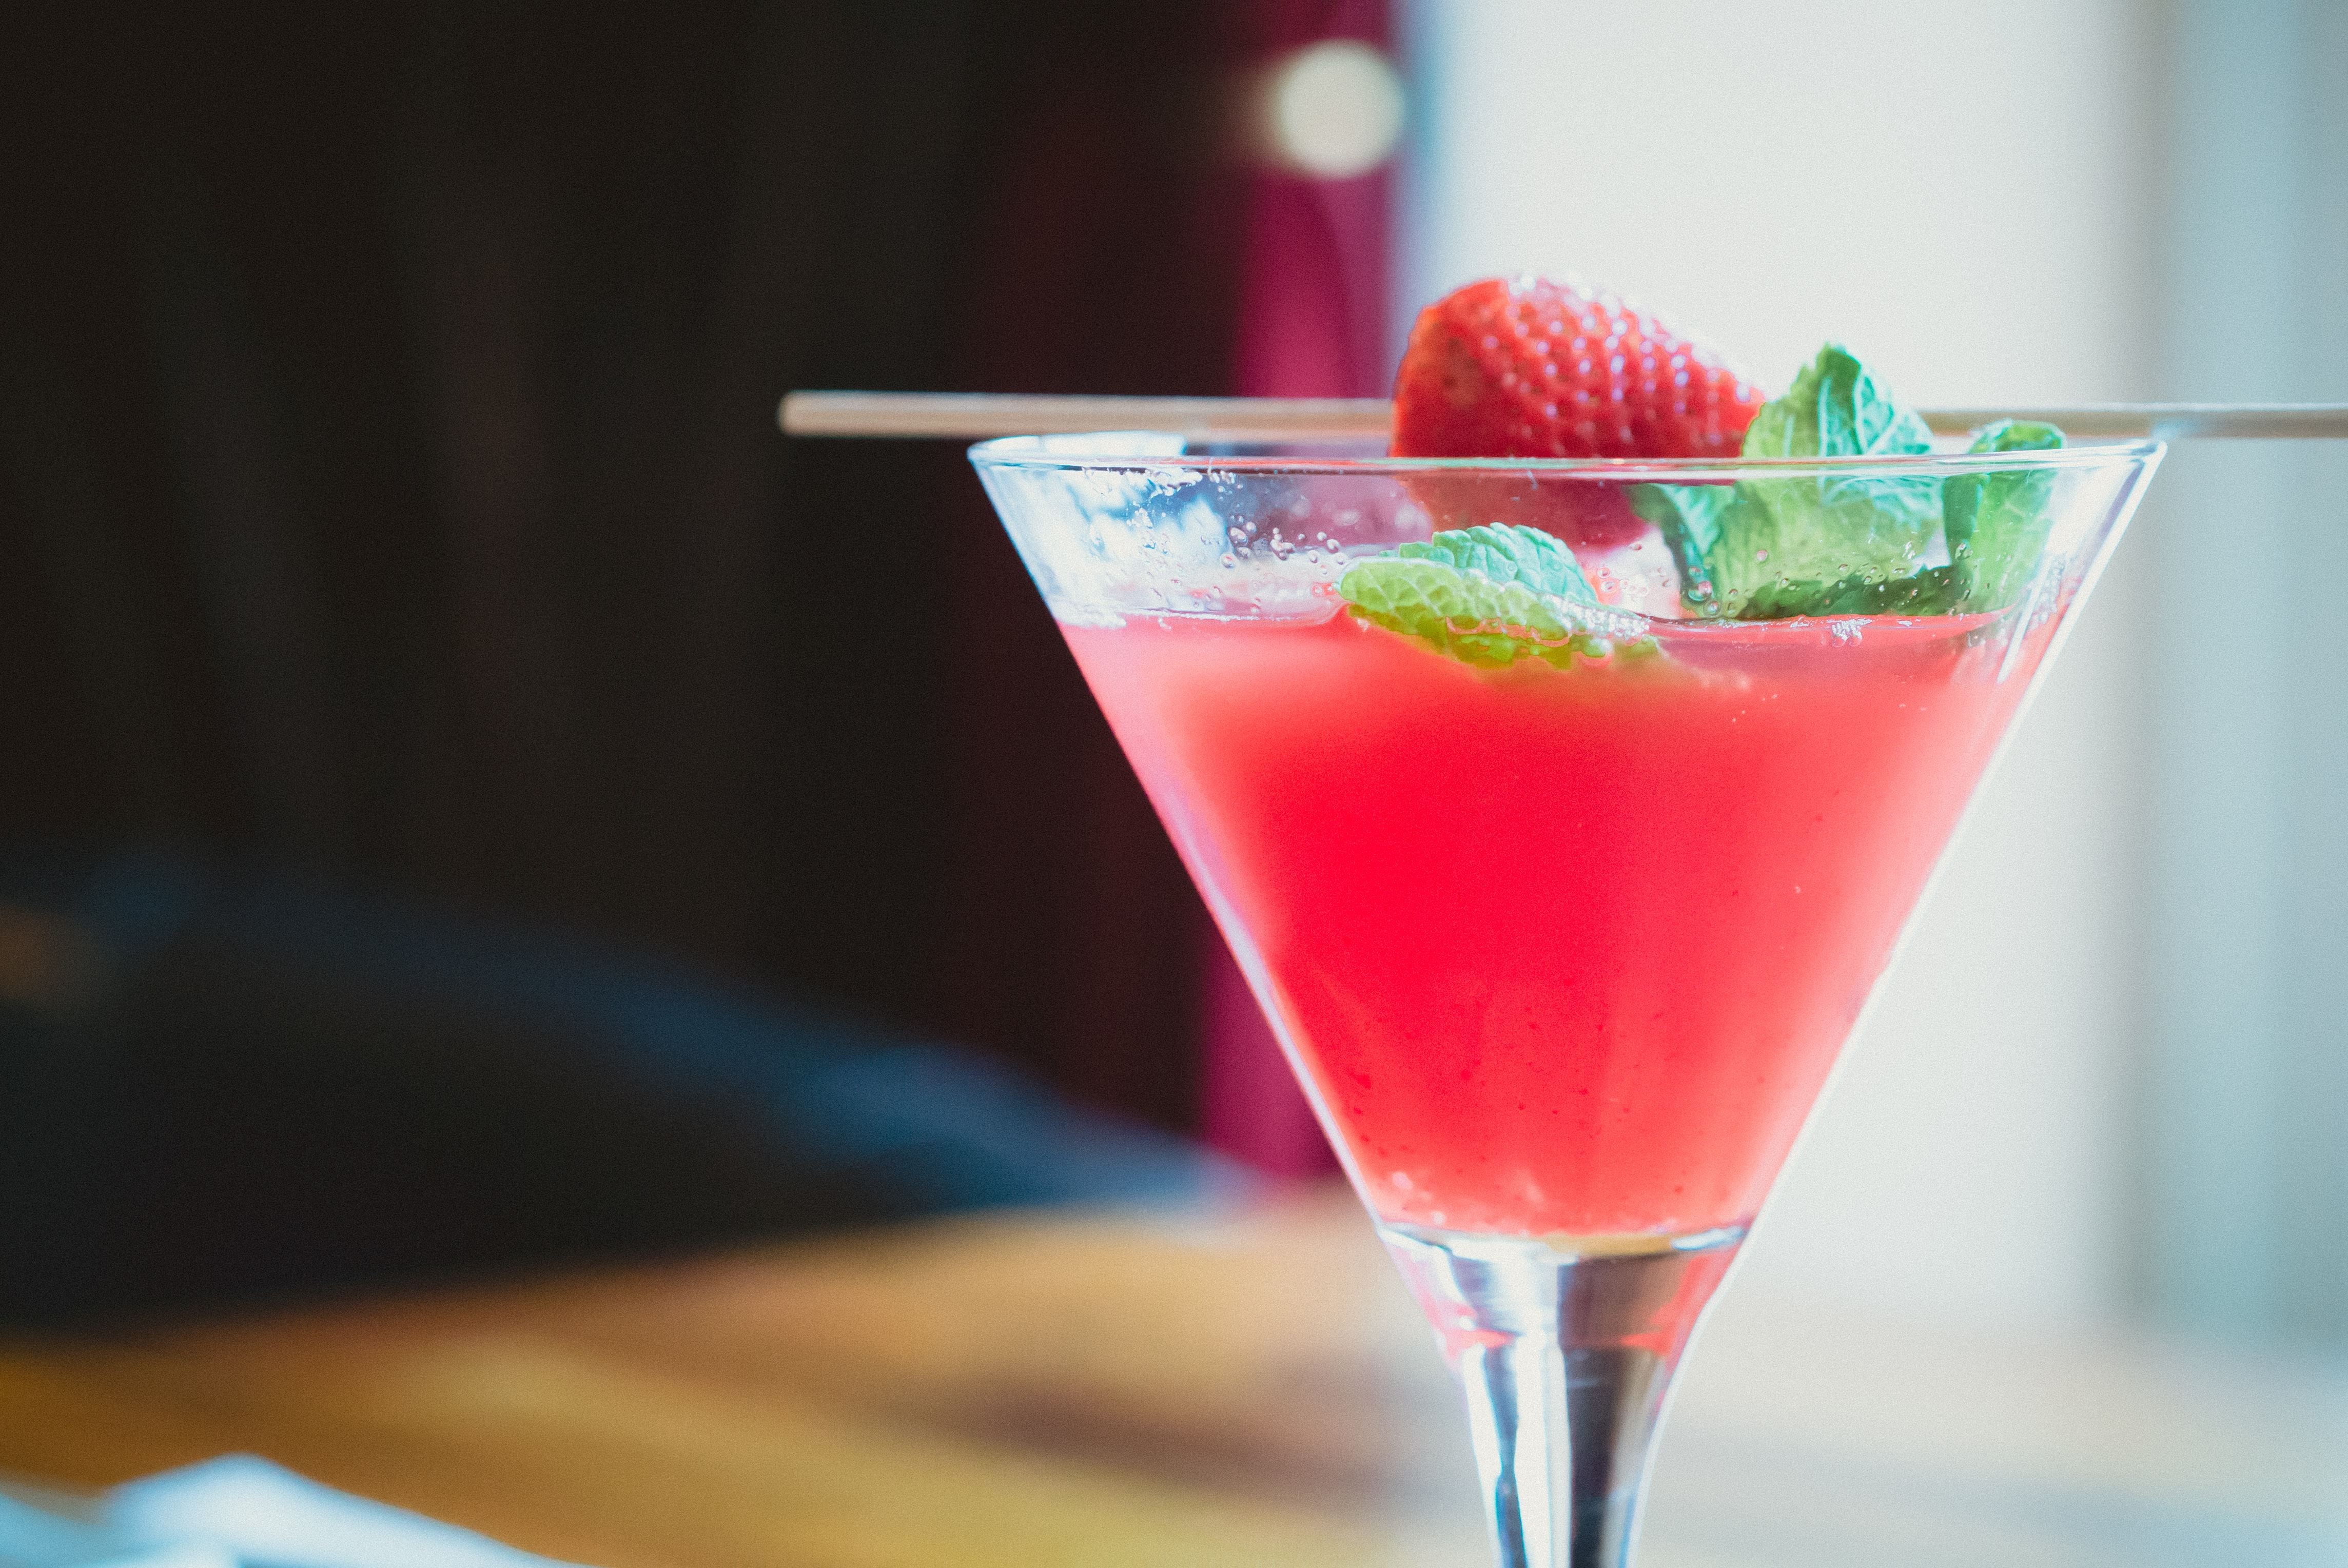 Macro view of a strawberry cocktail drink in a glass cup and a straw in it